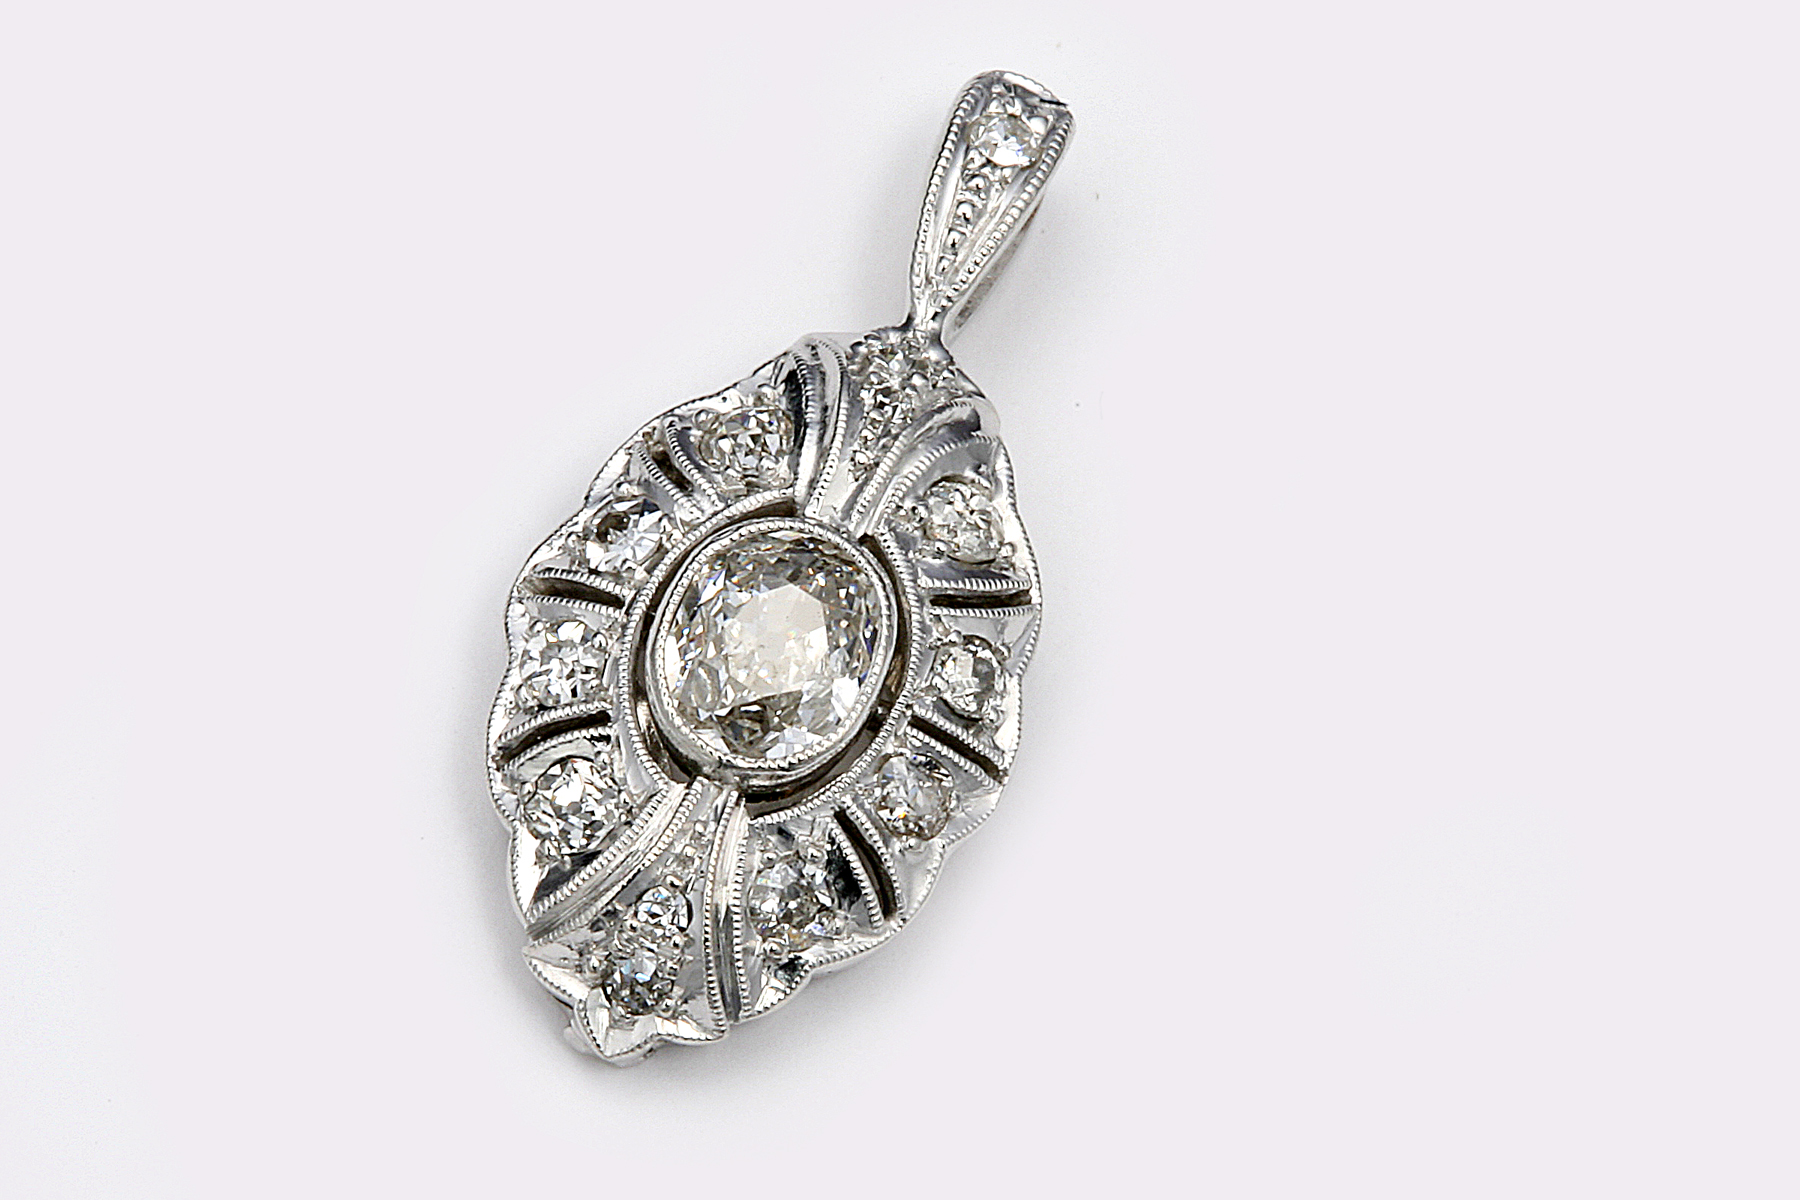 necklace art news diamond deco auction antique jewellery january necklaces vintage